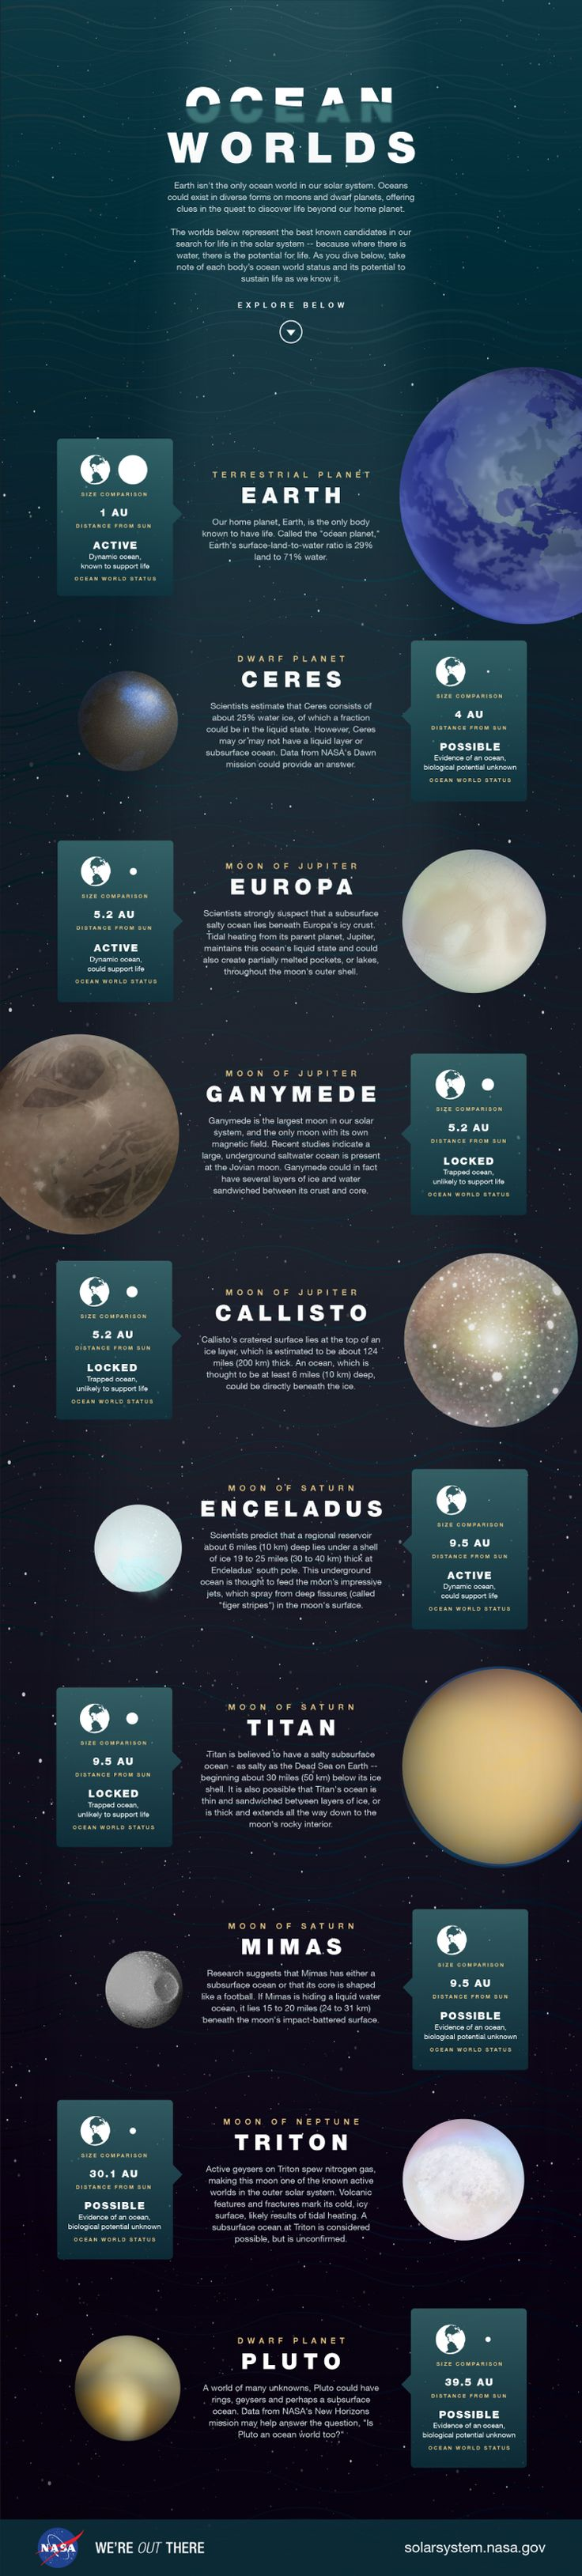 Our Solar System's 9 Extraterrestrial Oceans in One Surprising Infographic